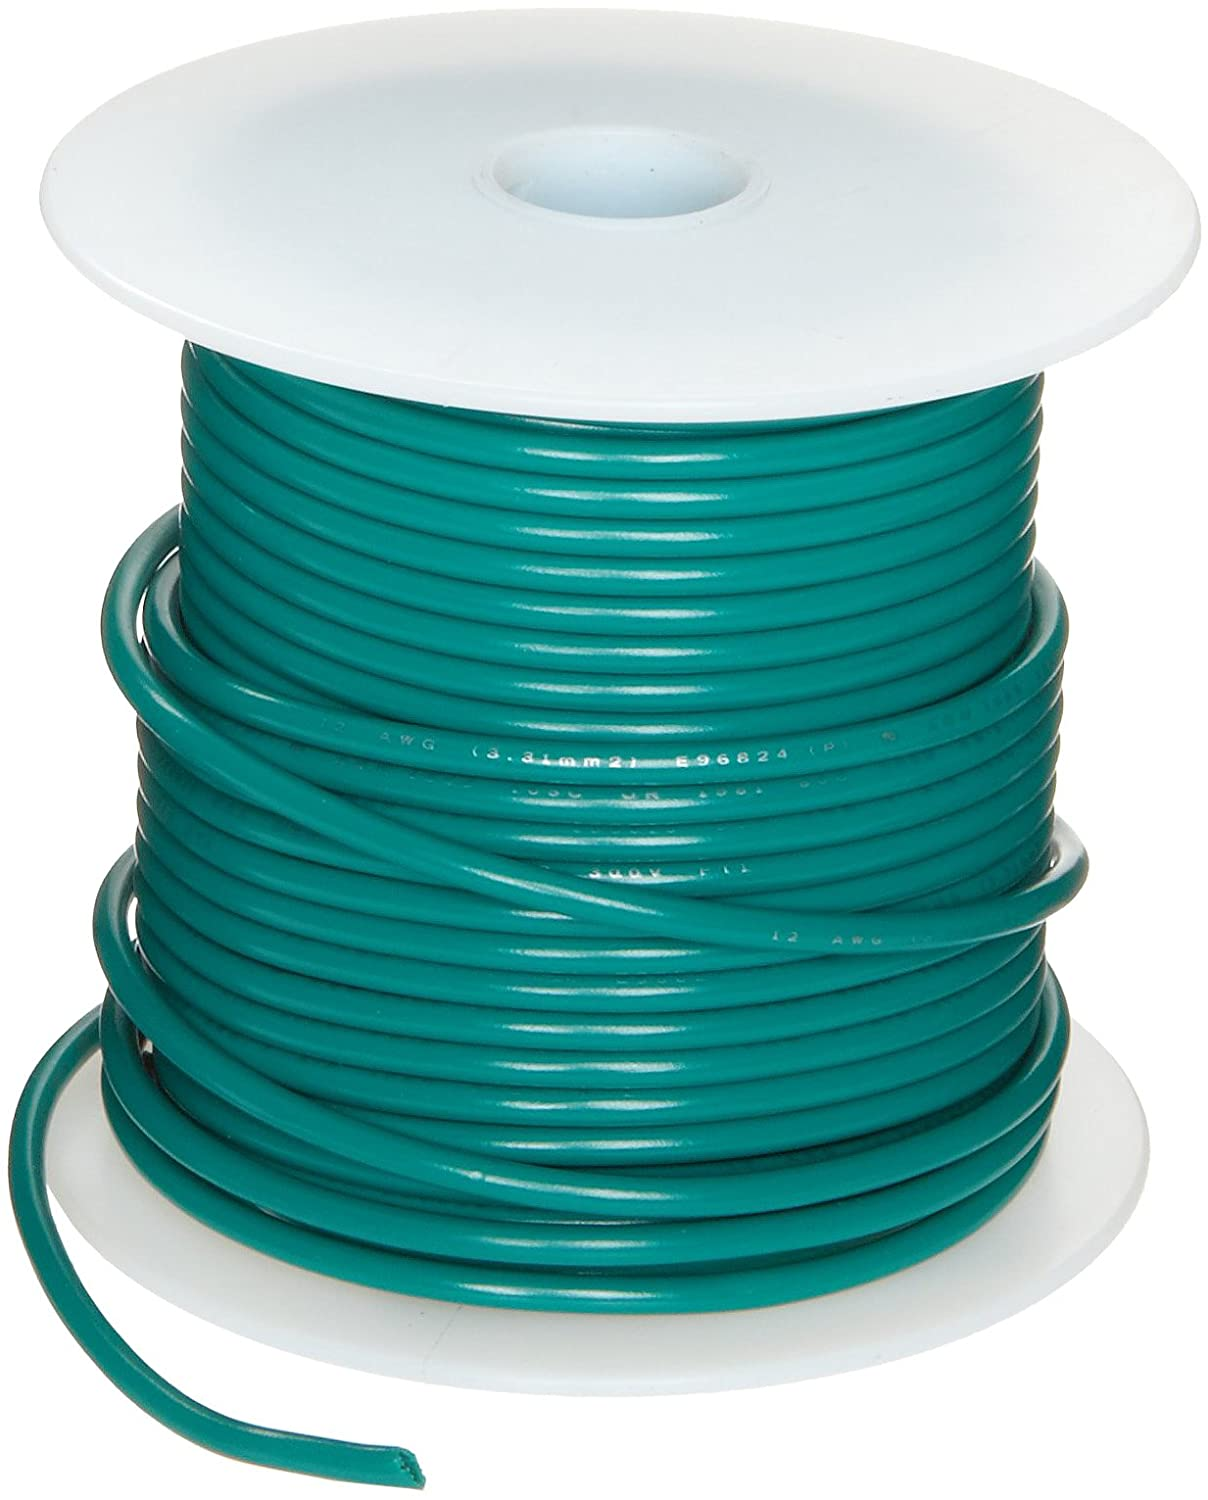 UL1007 Commercial Copper Wire, Green PVC Insulation: Electronic ...